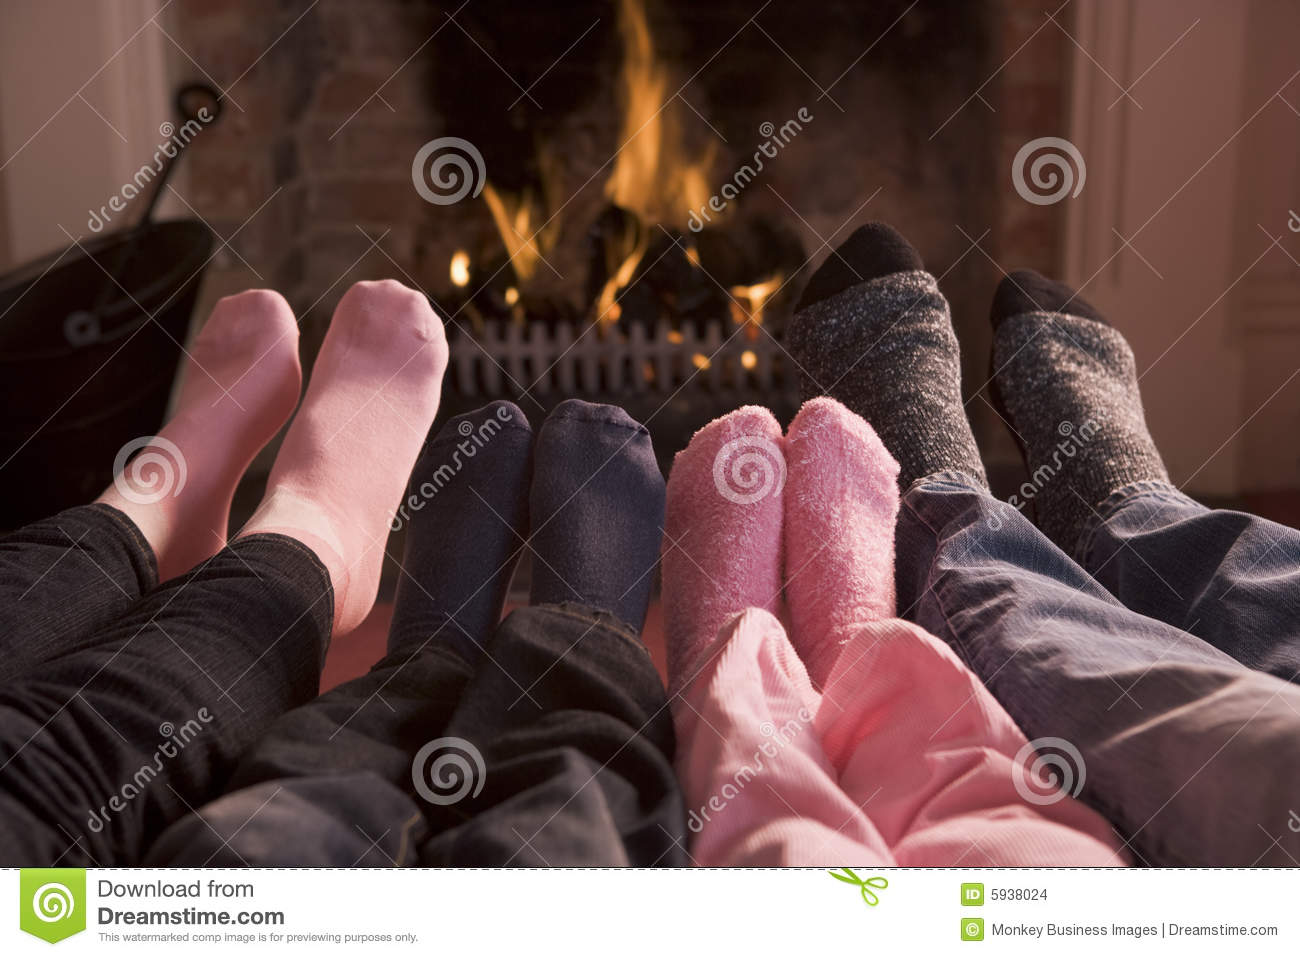 Feet Warming By Fireplace Stock Photo - Image: 31495870